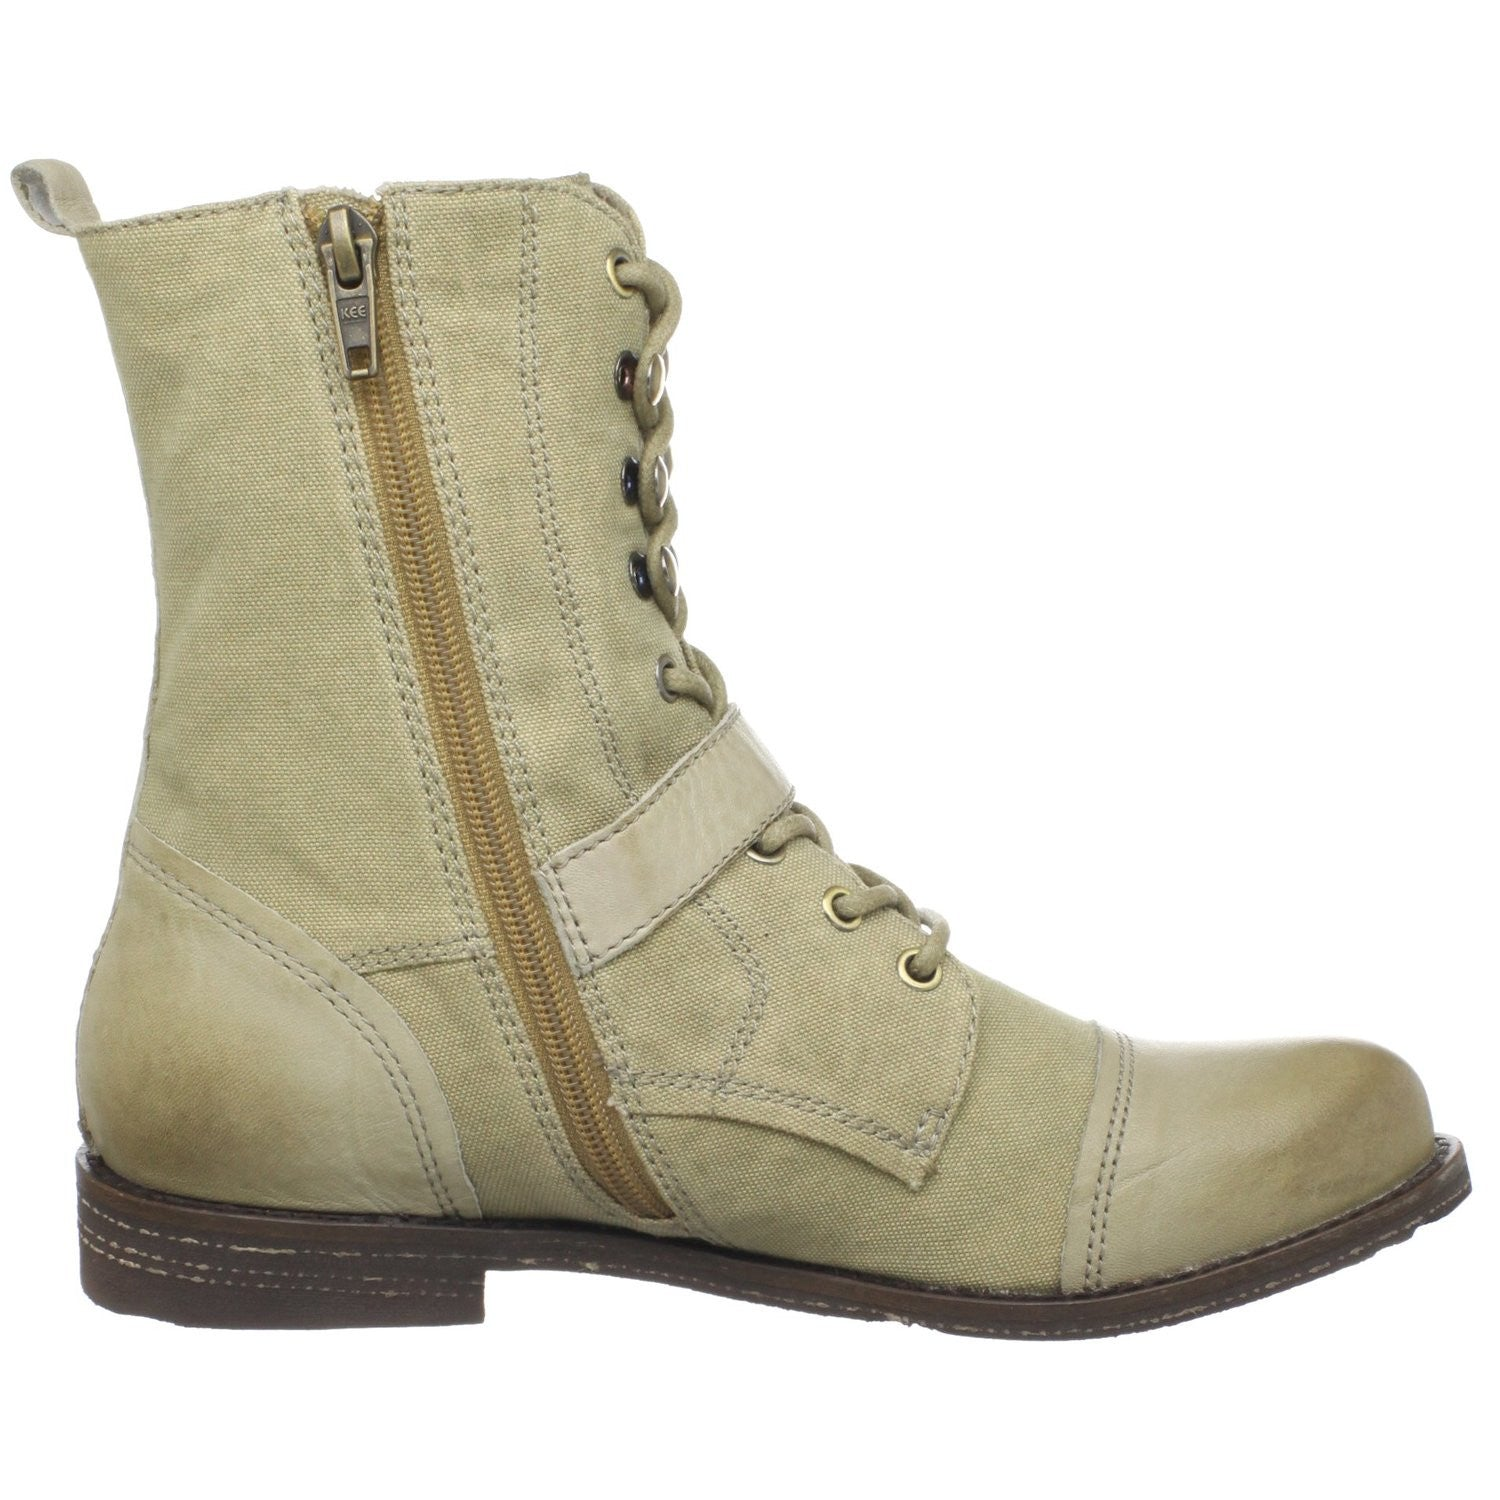 OTBT Women's Hutchinson Boot - Beige